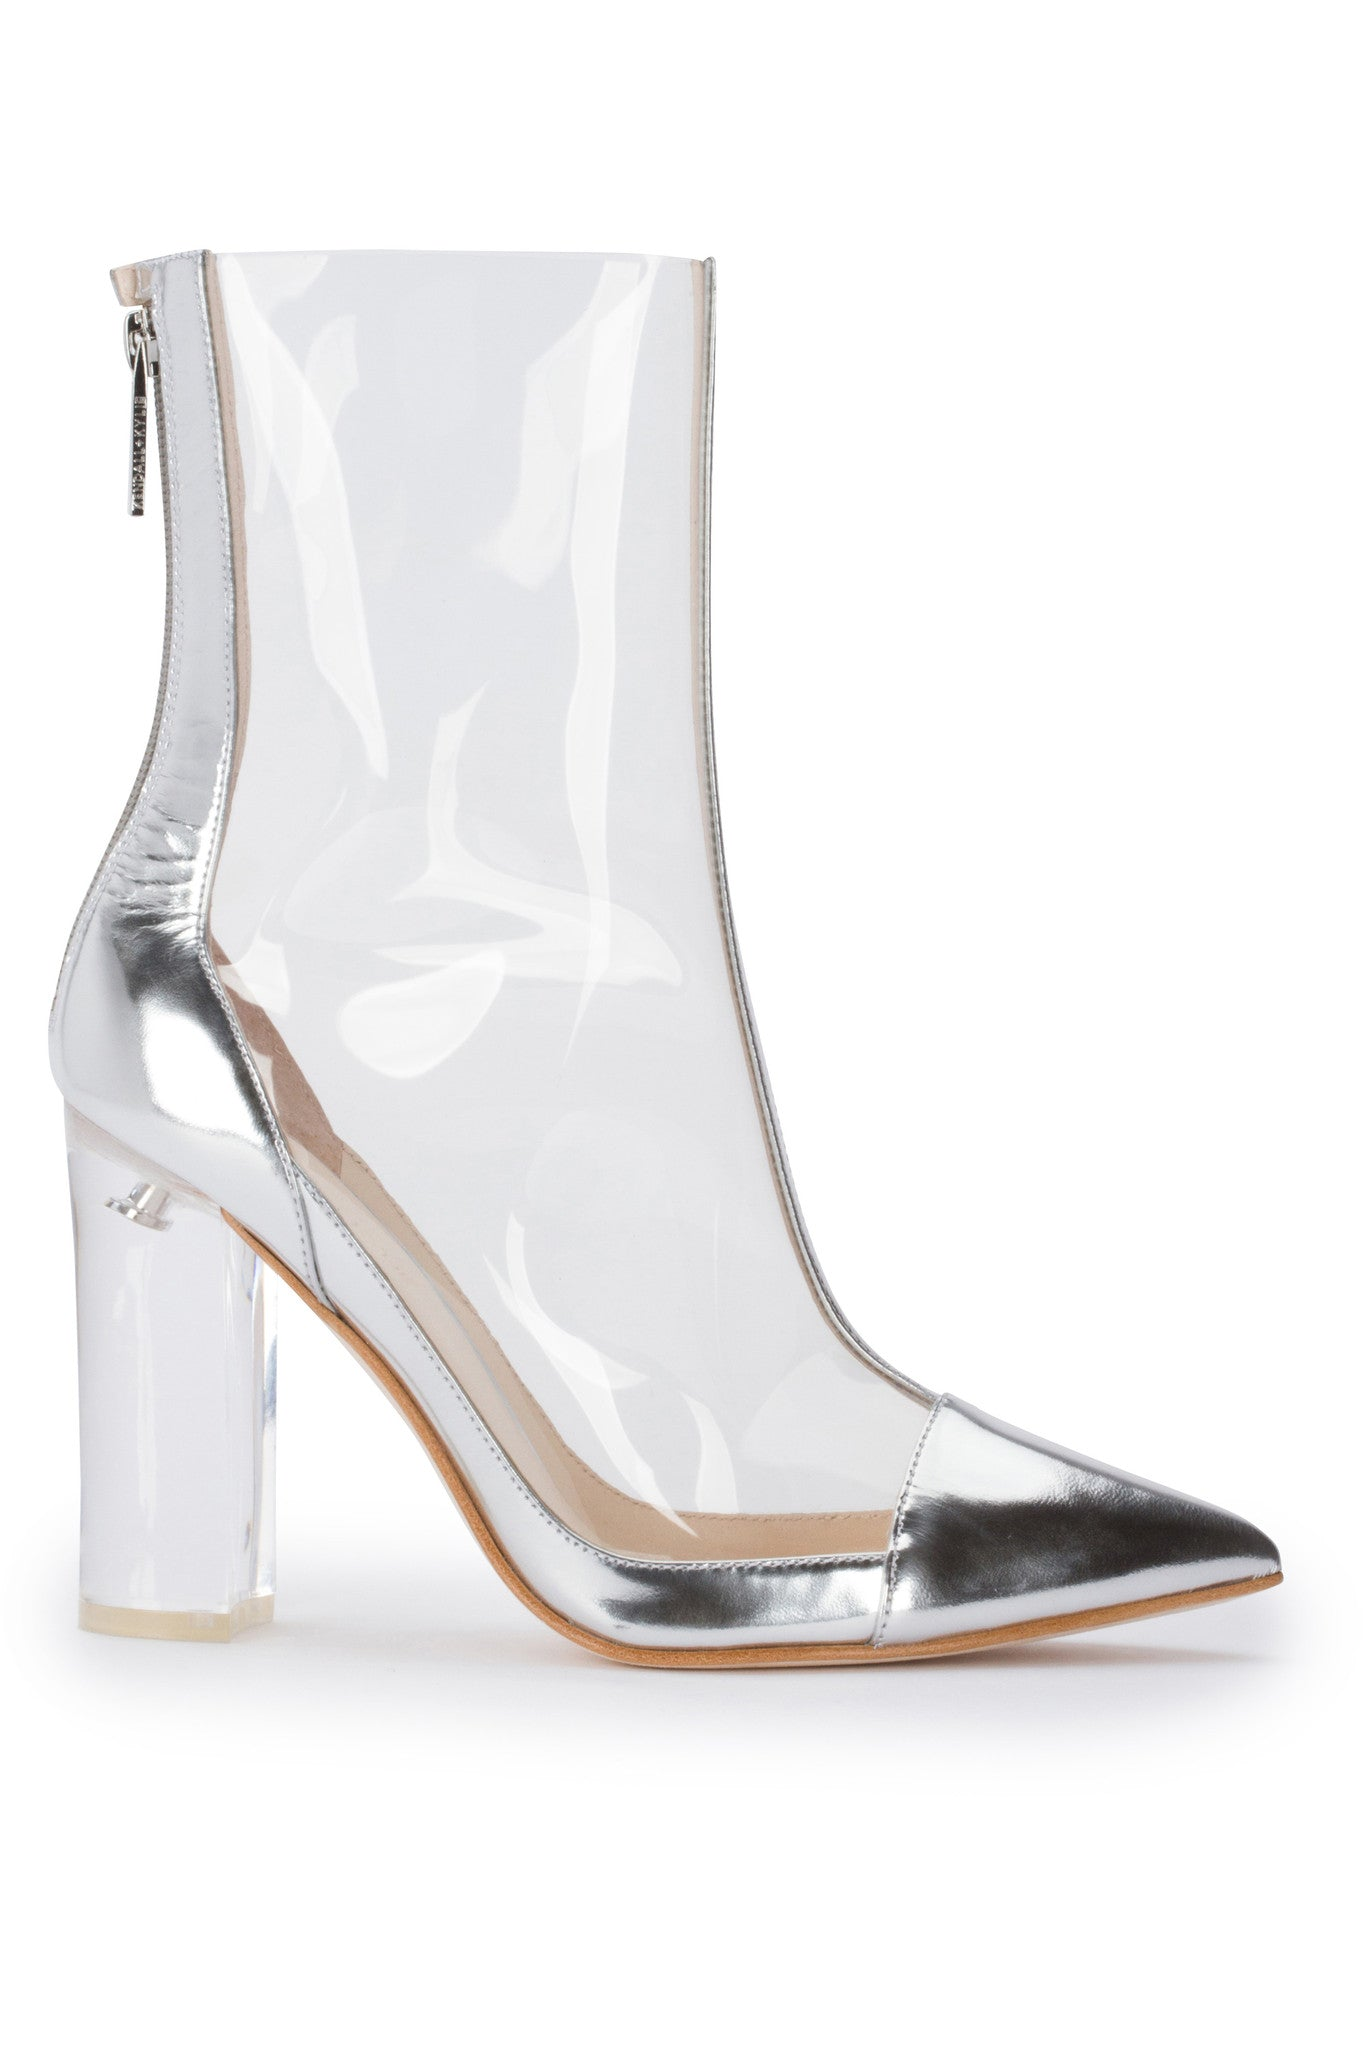 HAVEN LUCITE BOOTIE SHOES by KENDALL + KYLIE